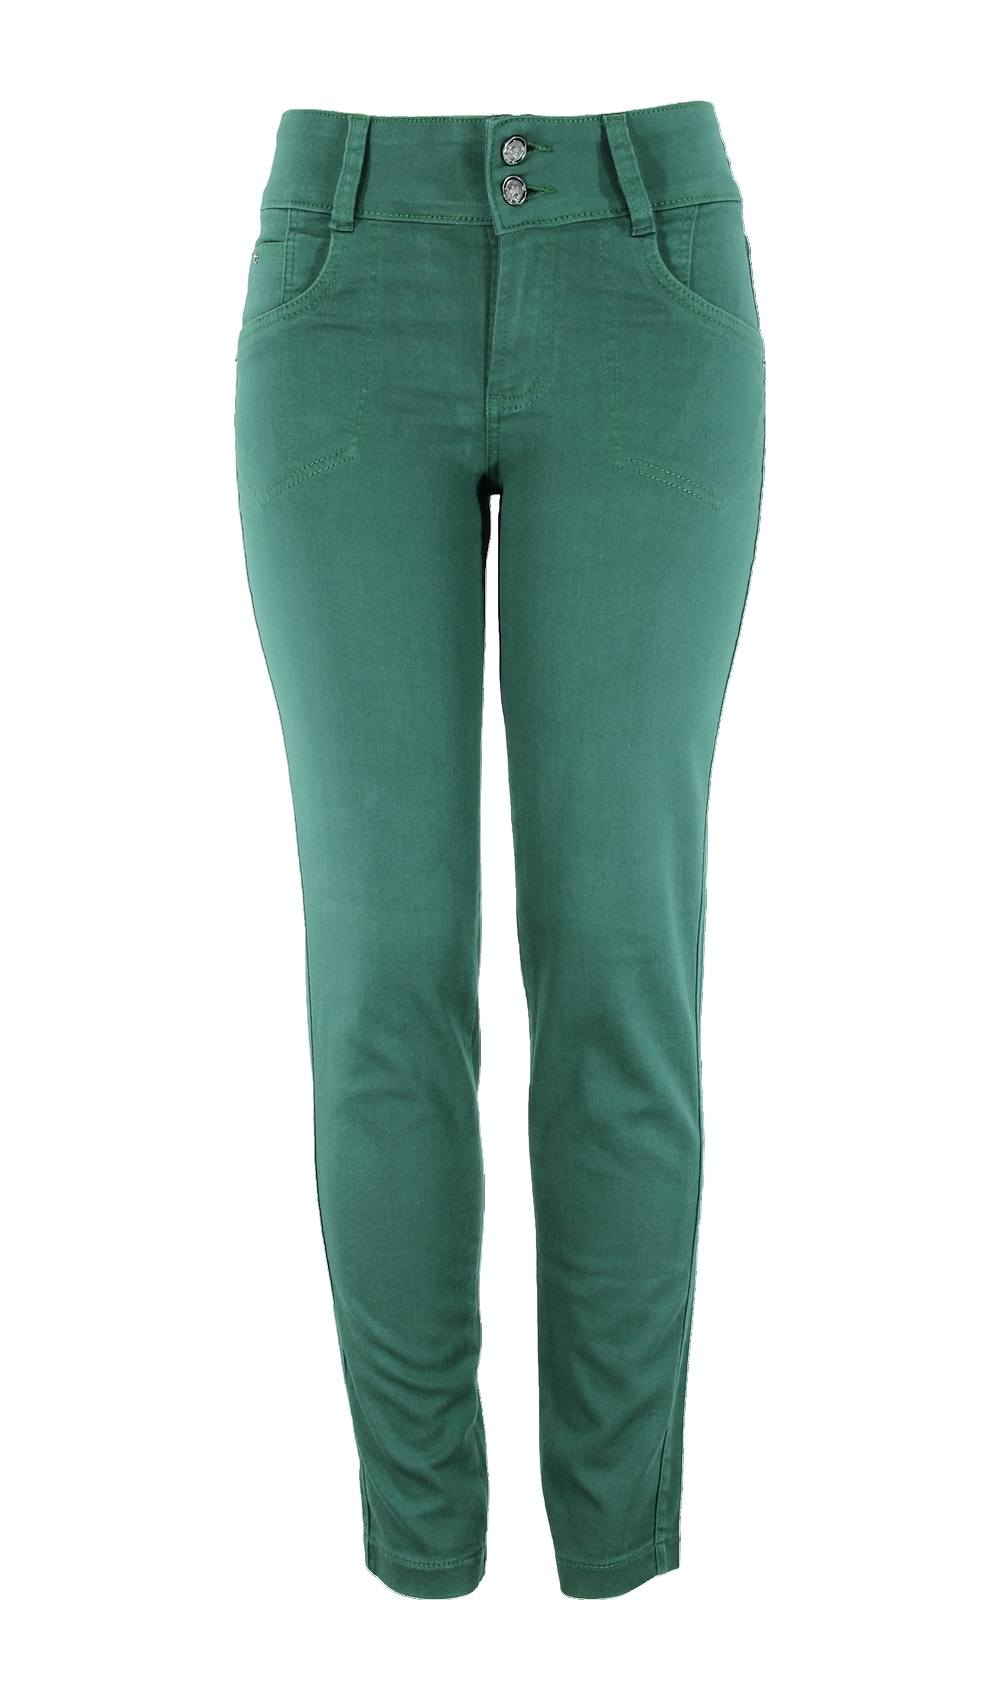 Cigarrete Eruption Jeans Color Julie [52173VE]